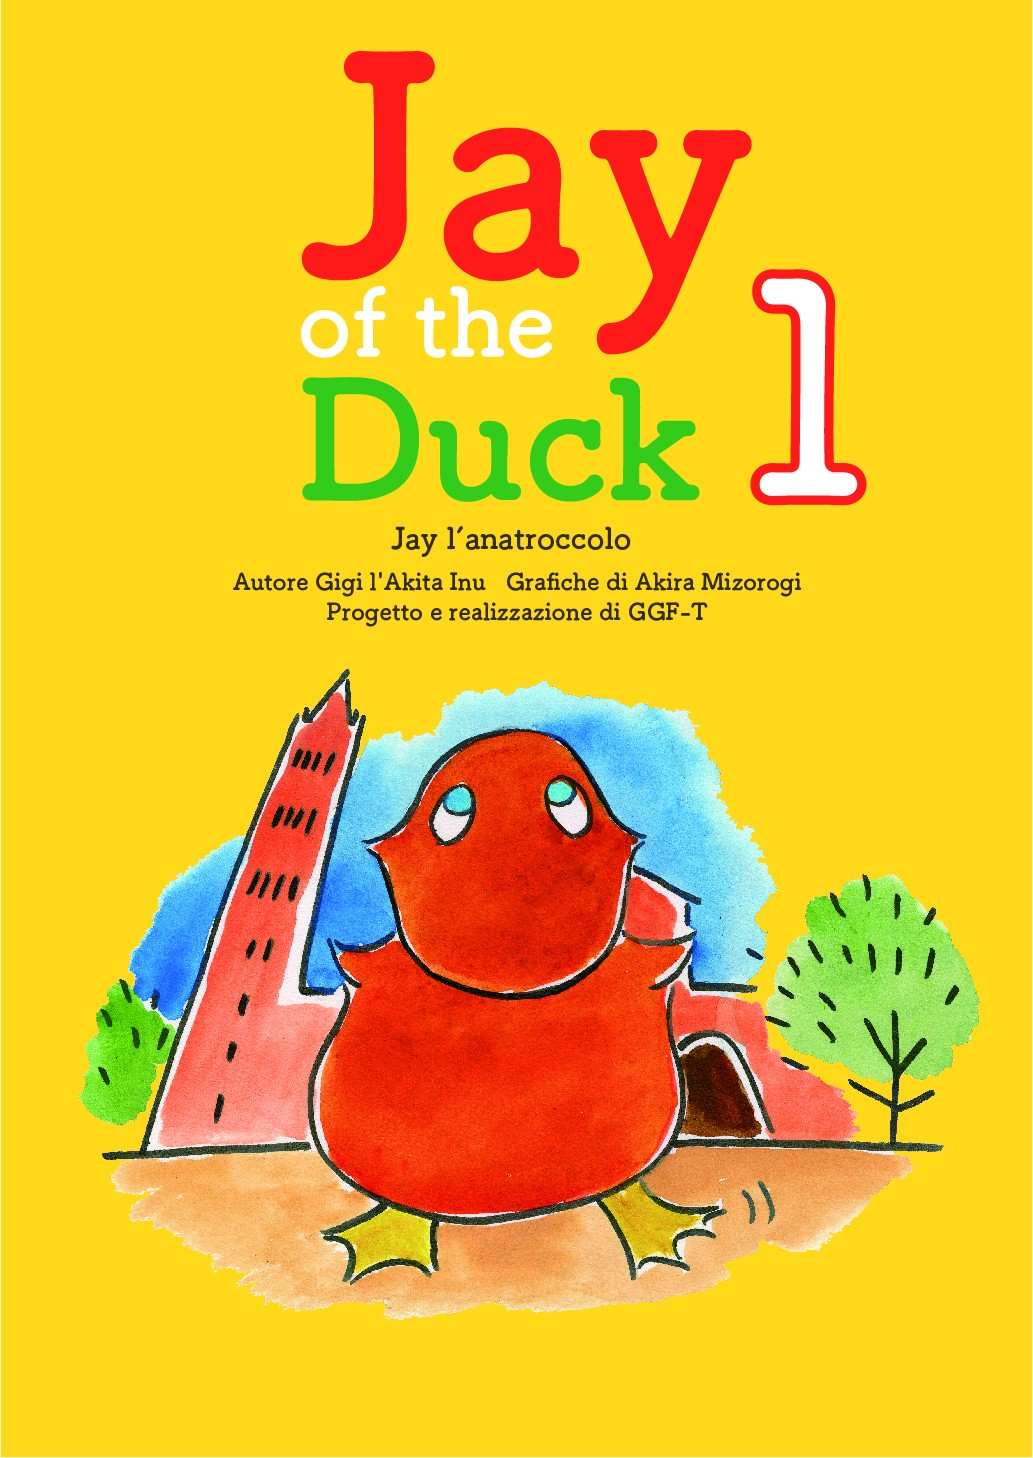 Jay of the Duck 1【限定200冊 】発売開始のお知らせ